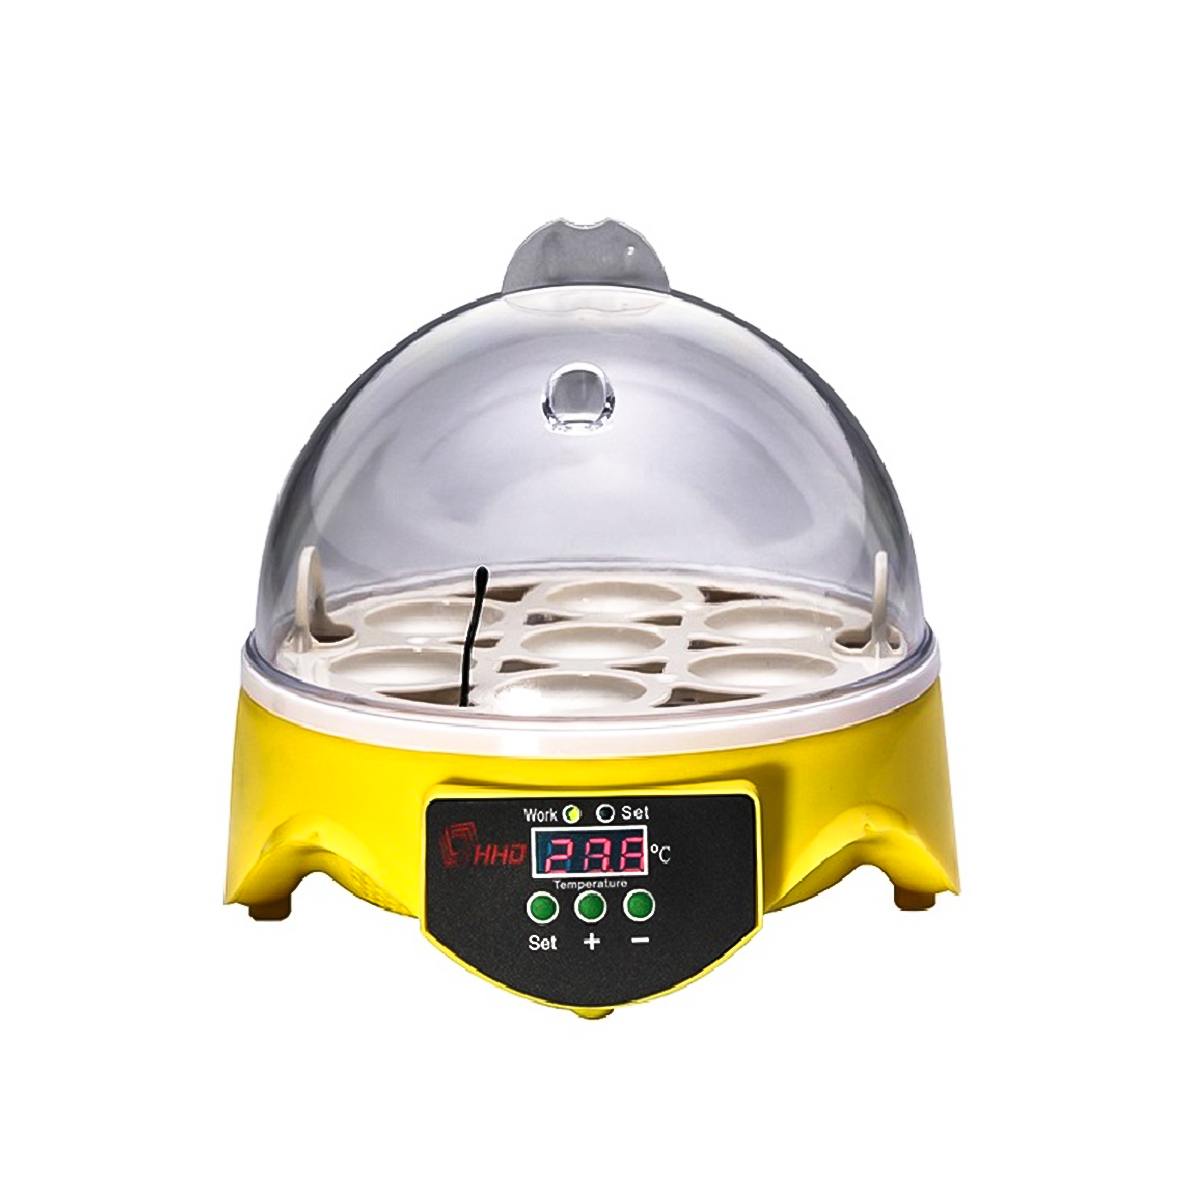 Mini 7 Eggs Incubator Fully Auto Digital LED Chicken Duck Hatcher Egg Incubator Machine Household Four SpecificationsMini 7 Eggs Incubator Fully Auto Digital LED Chicken Duck Hatcher Egg Incubator Machine Household Four Specifications